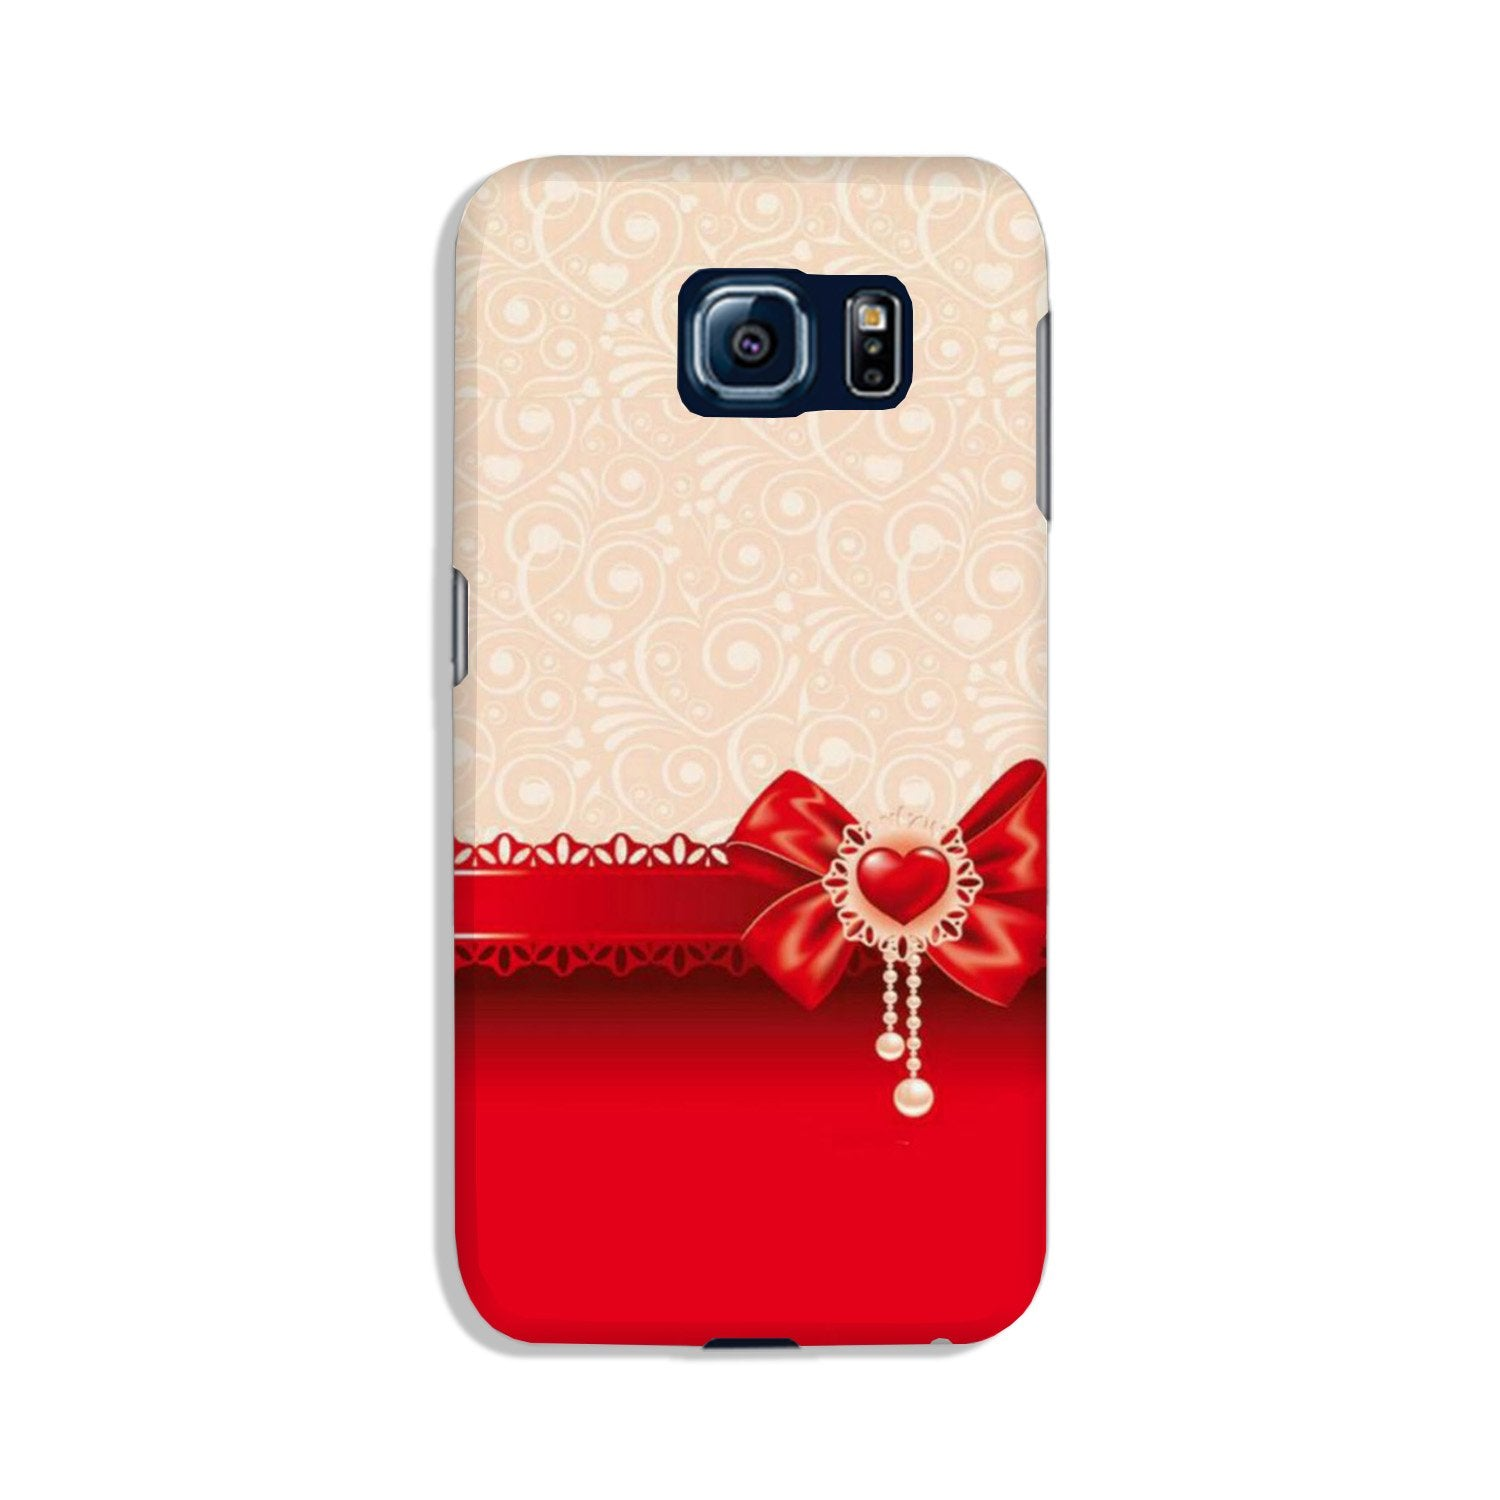 Gift Wrap3 Case for Galaxy S6